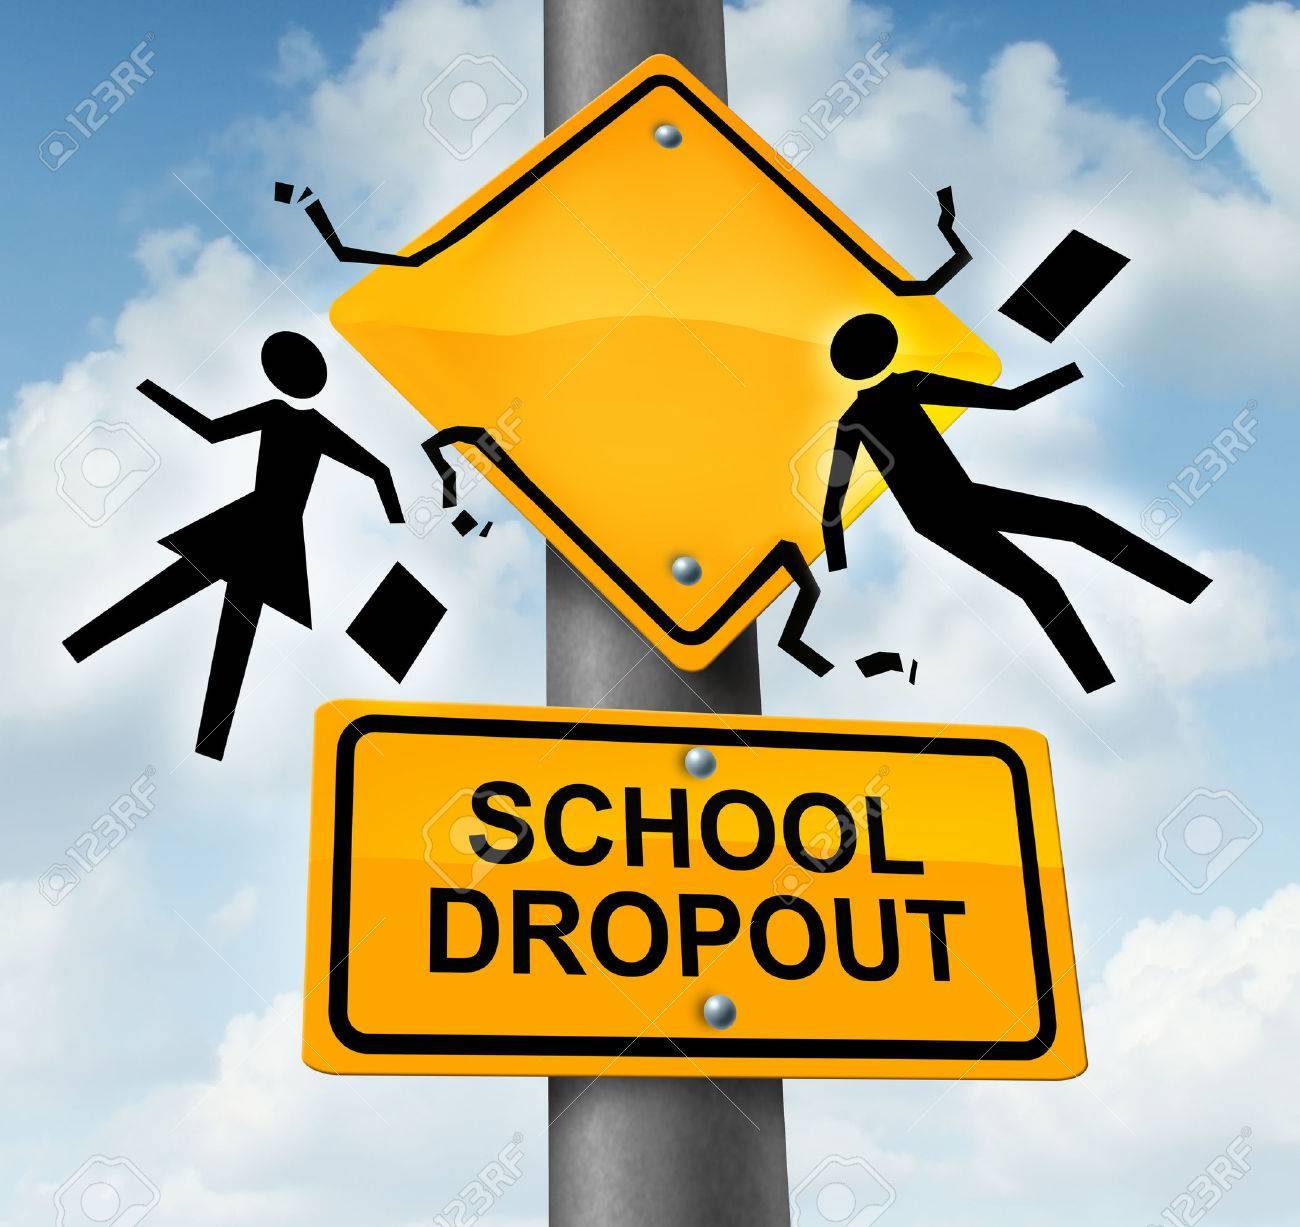 School dropout concept and dropping out of the education system school dropout concept and dropping out of the education system as a yellow road traffic sign biocorpaavc Choice Image